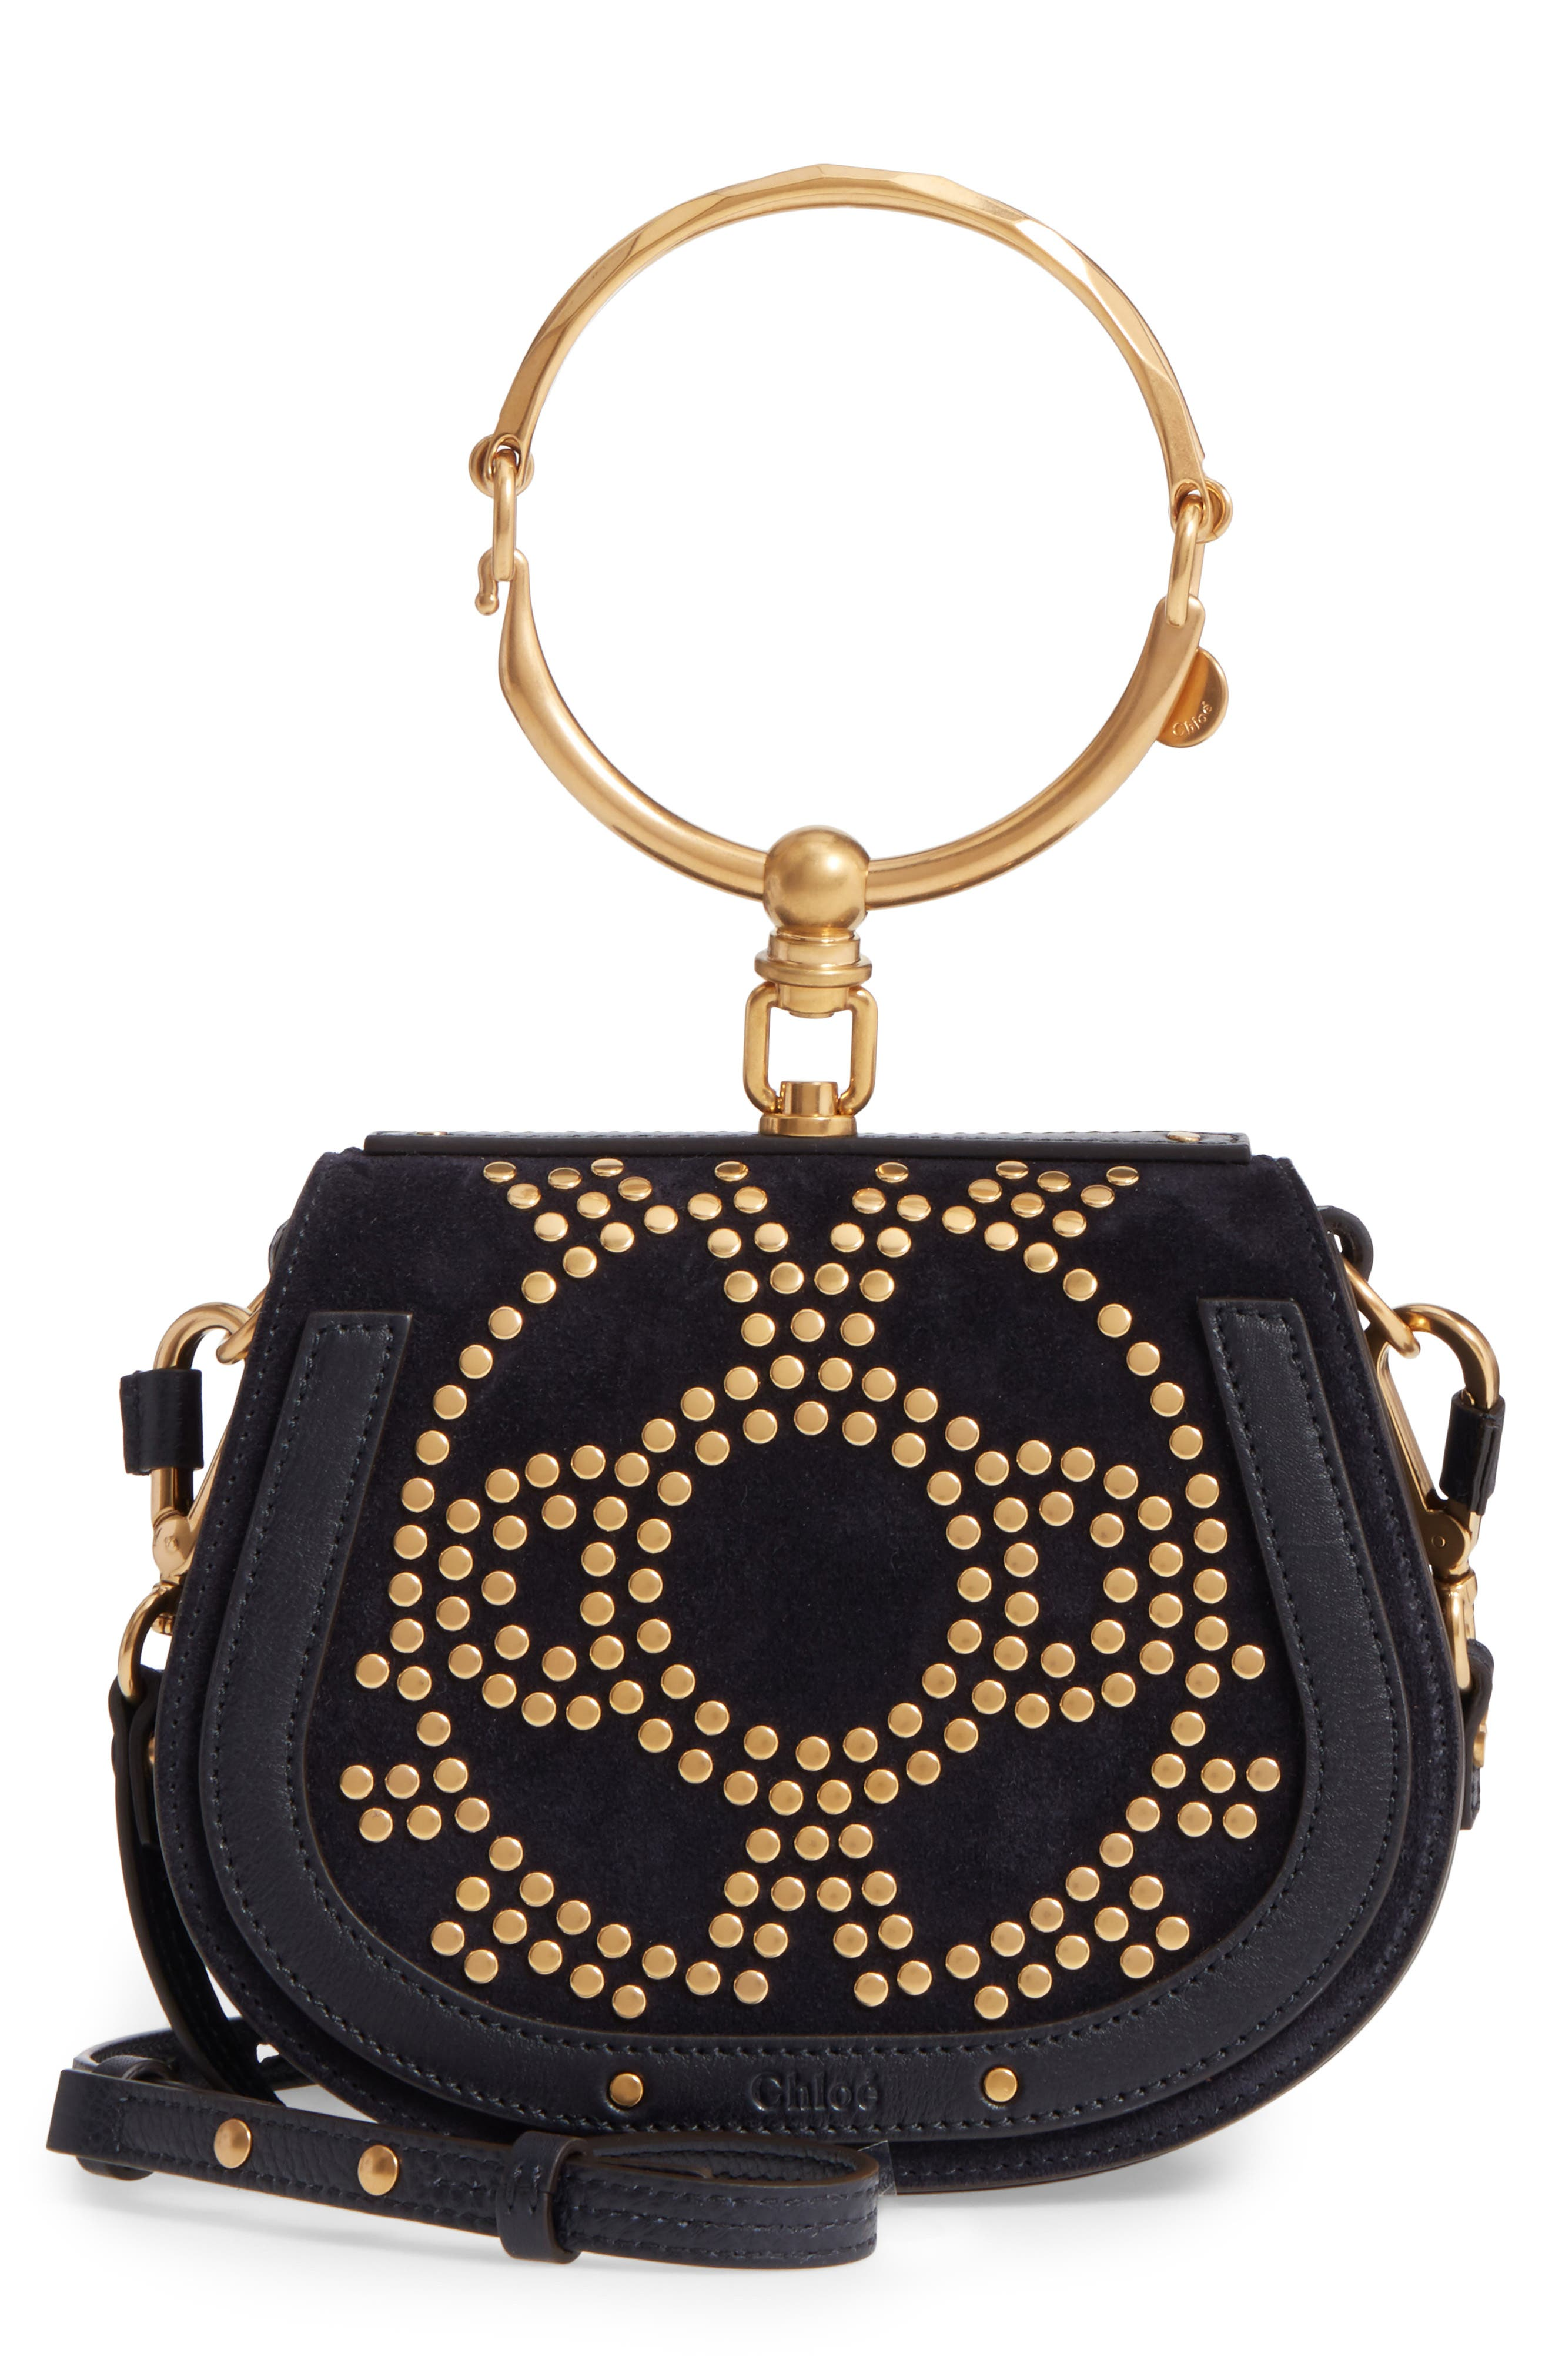 Main Image - Chloé Small Nile Bracelet Studded Leather Crossbody Bag